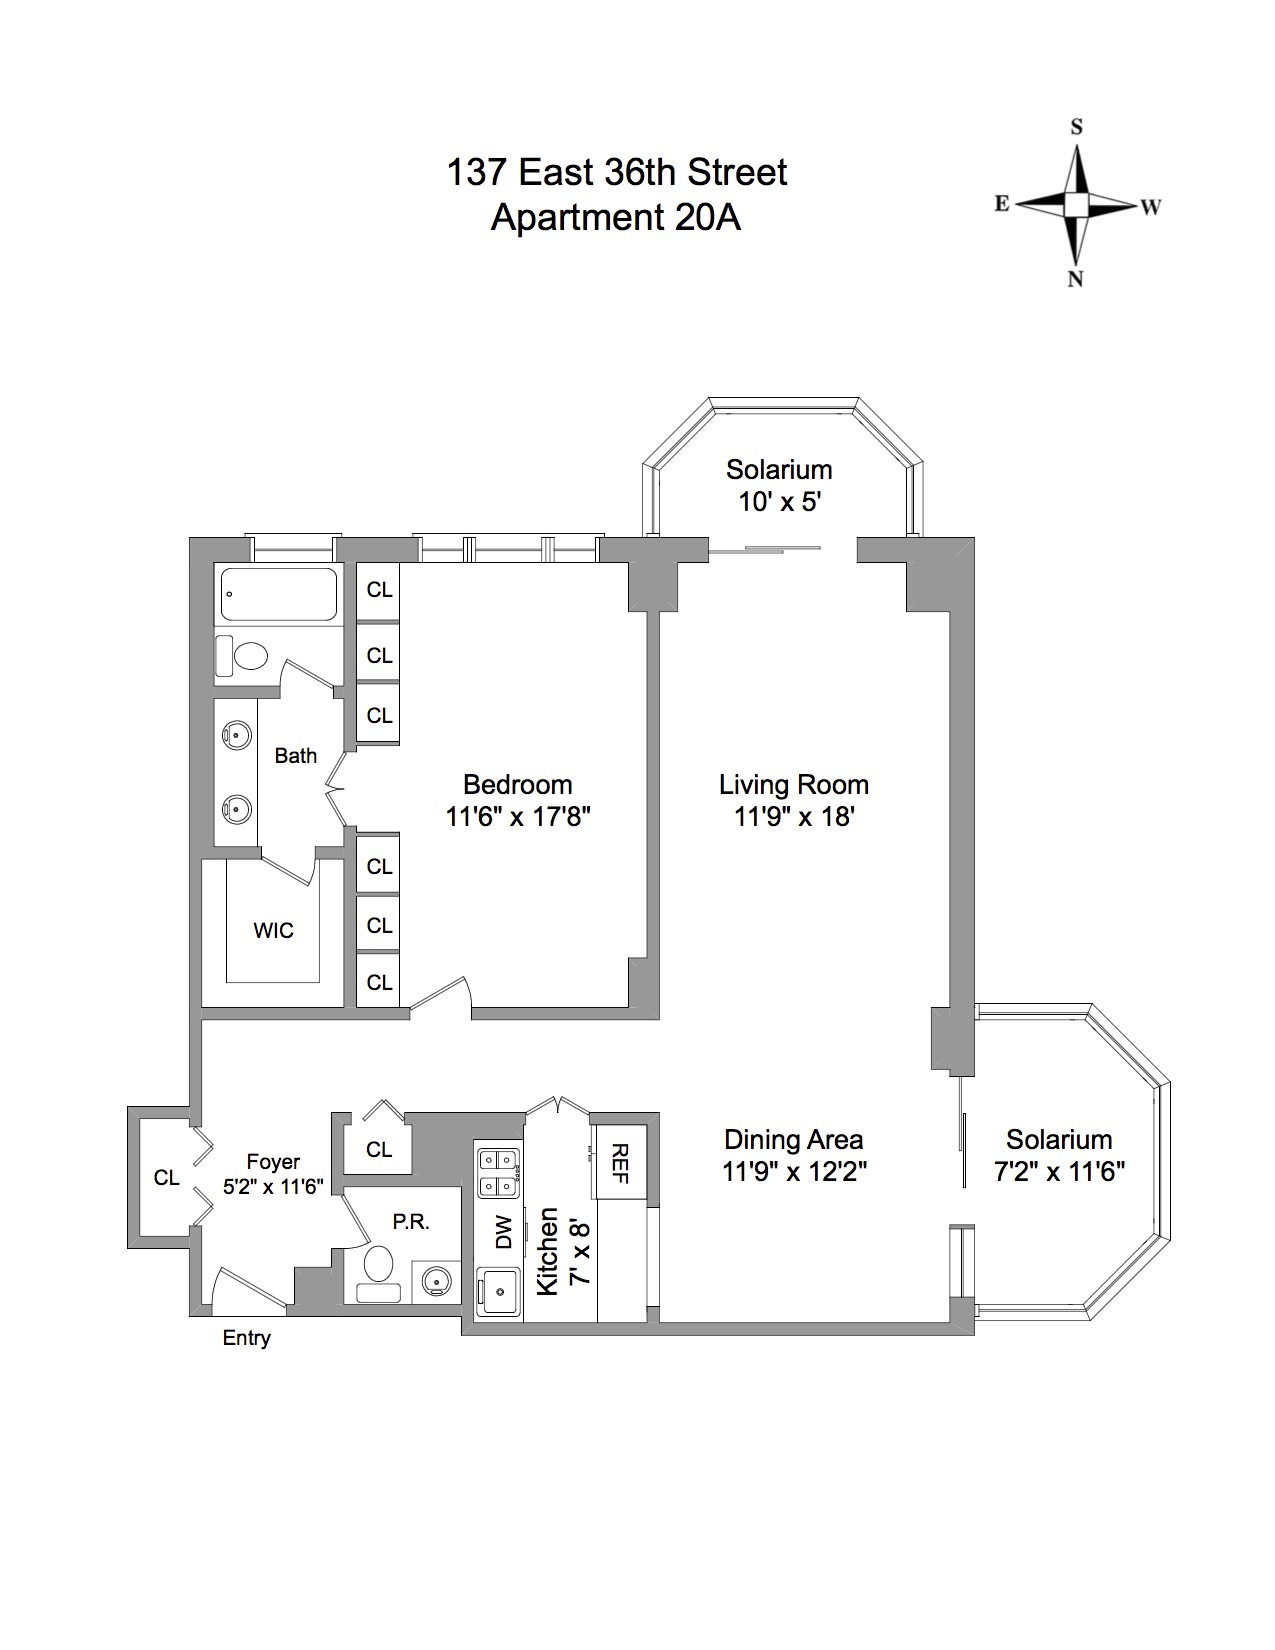 Floor Plan - 137 East 36th Street 20A